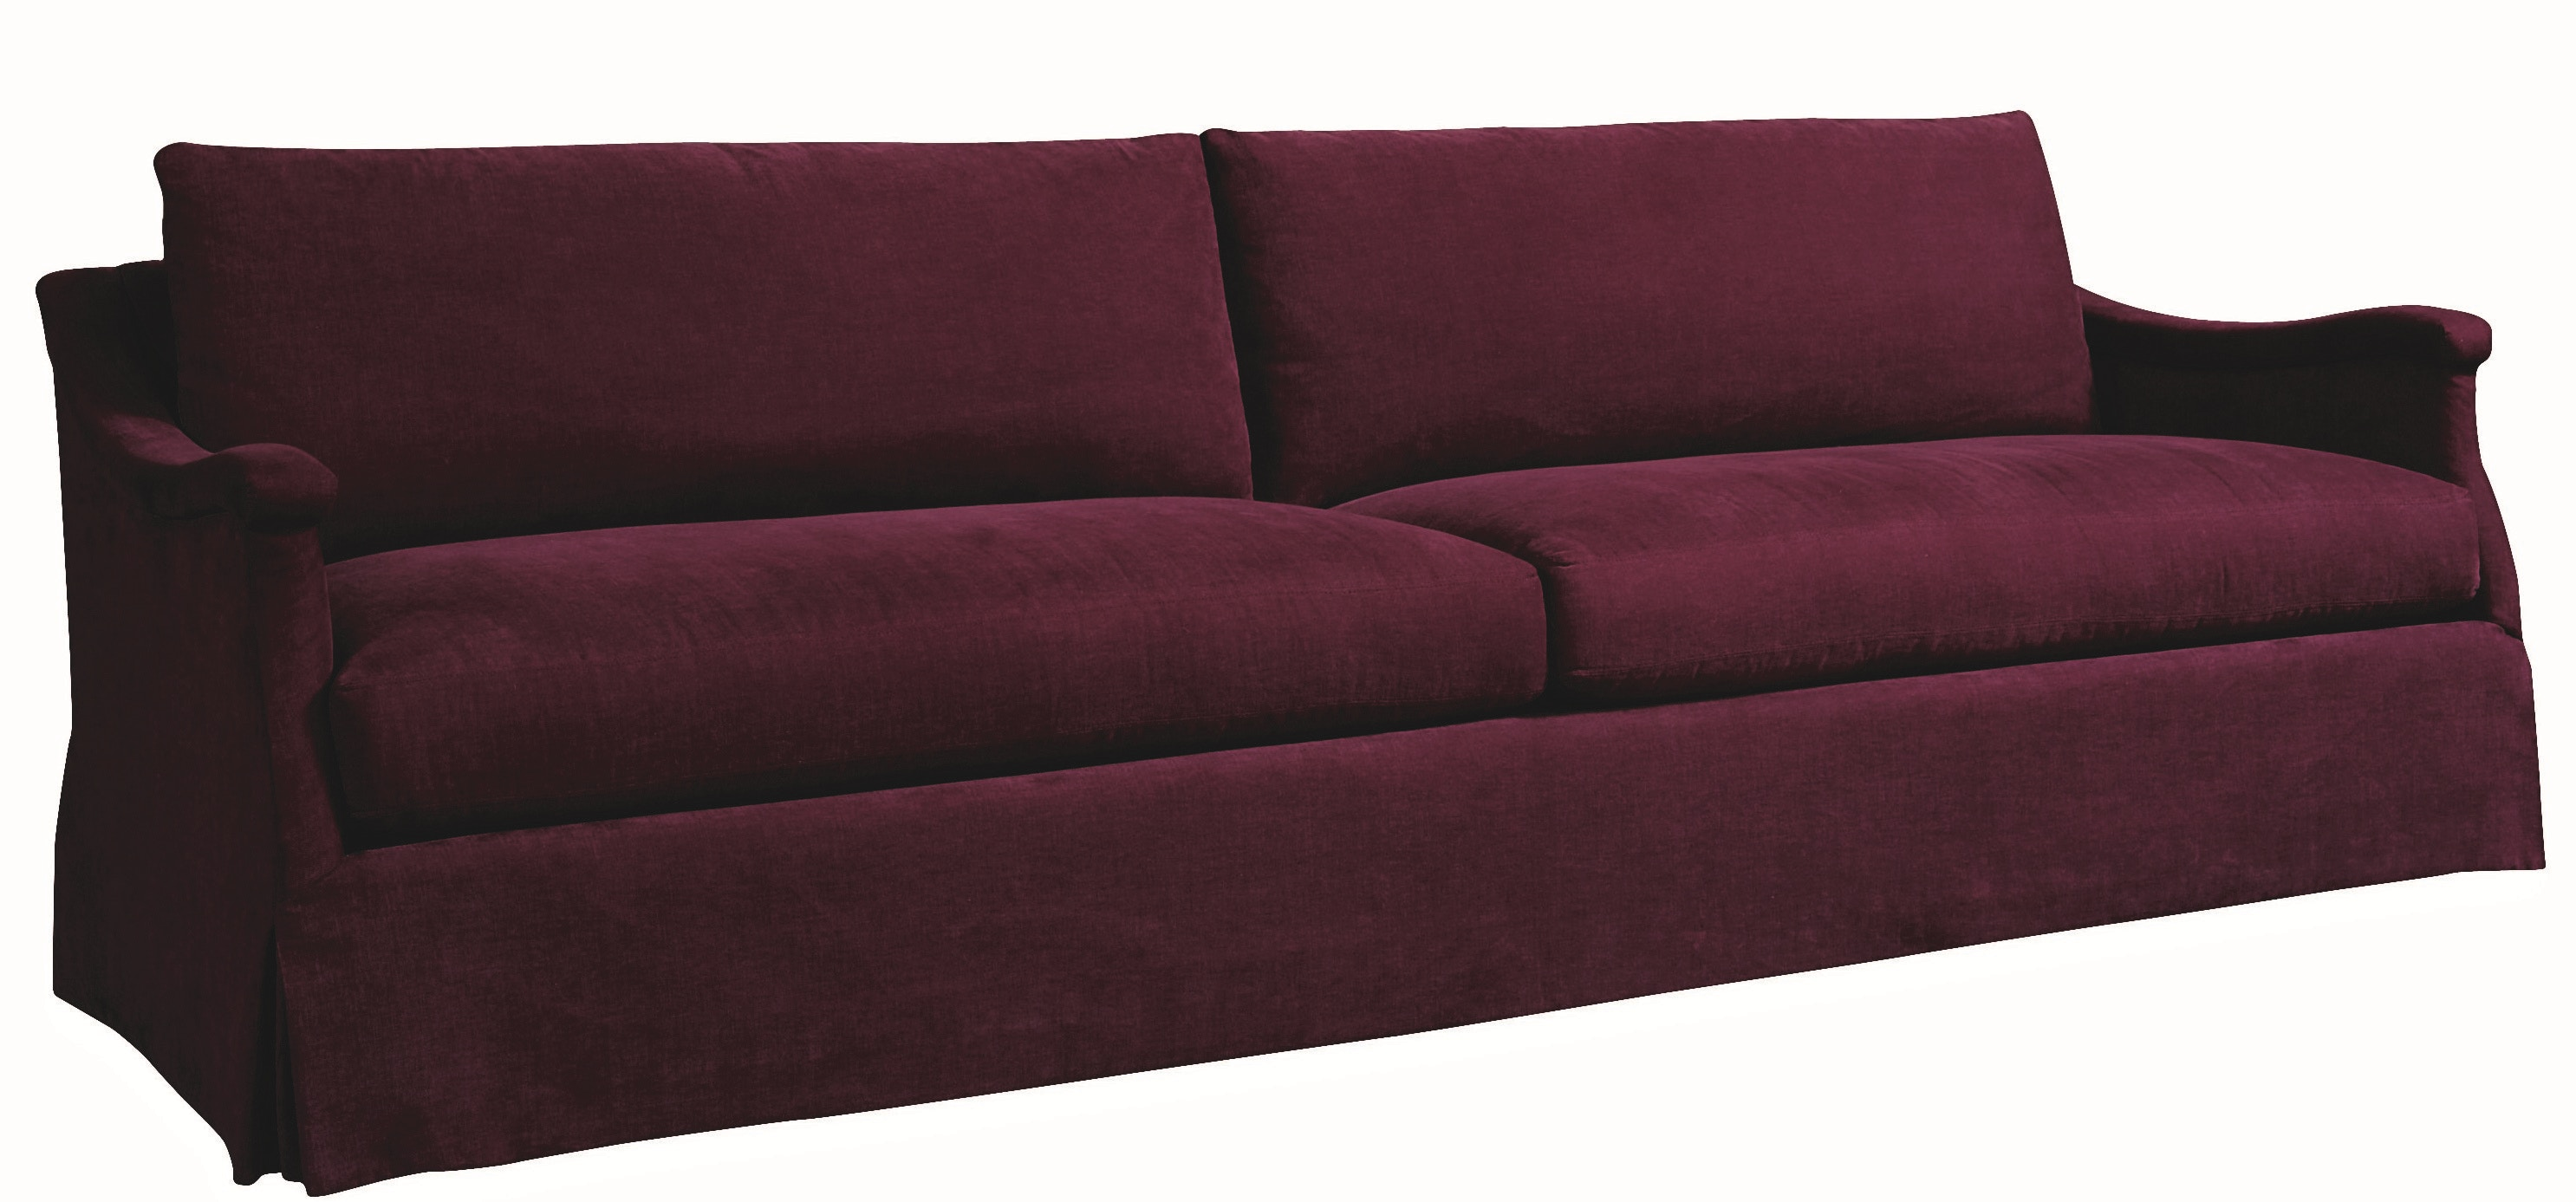 lee industries sofa prices papasan set living room extra long 3701 44 toms